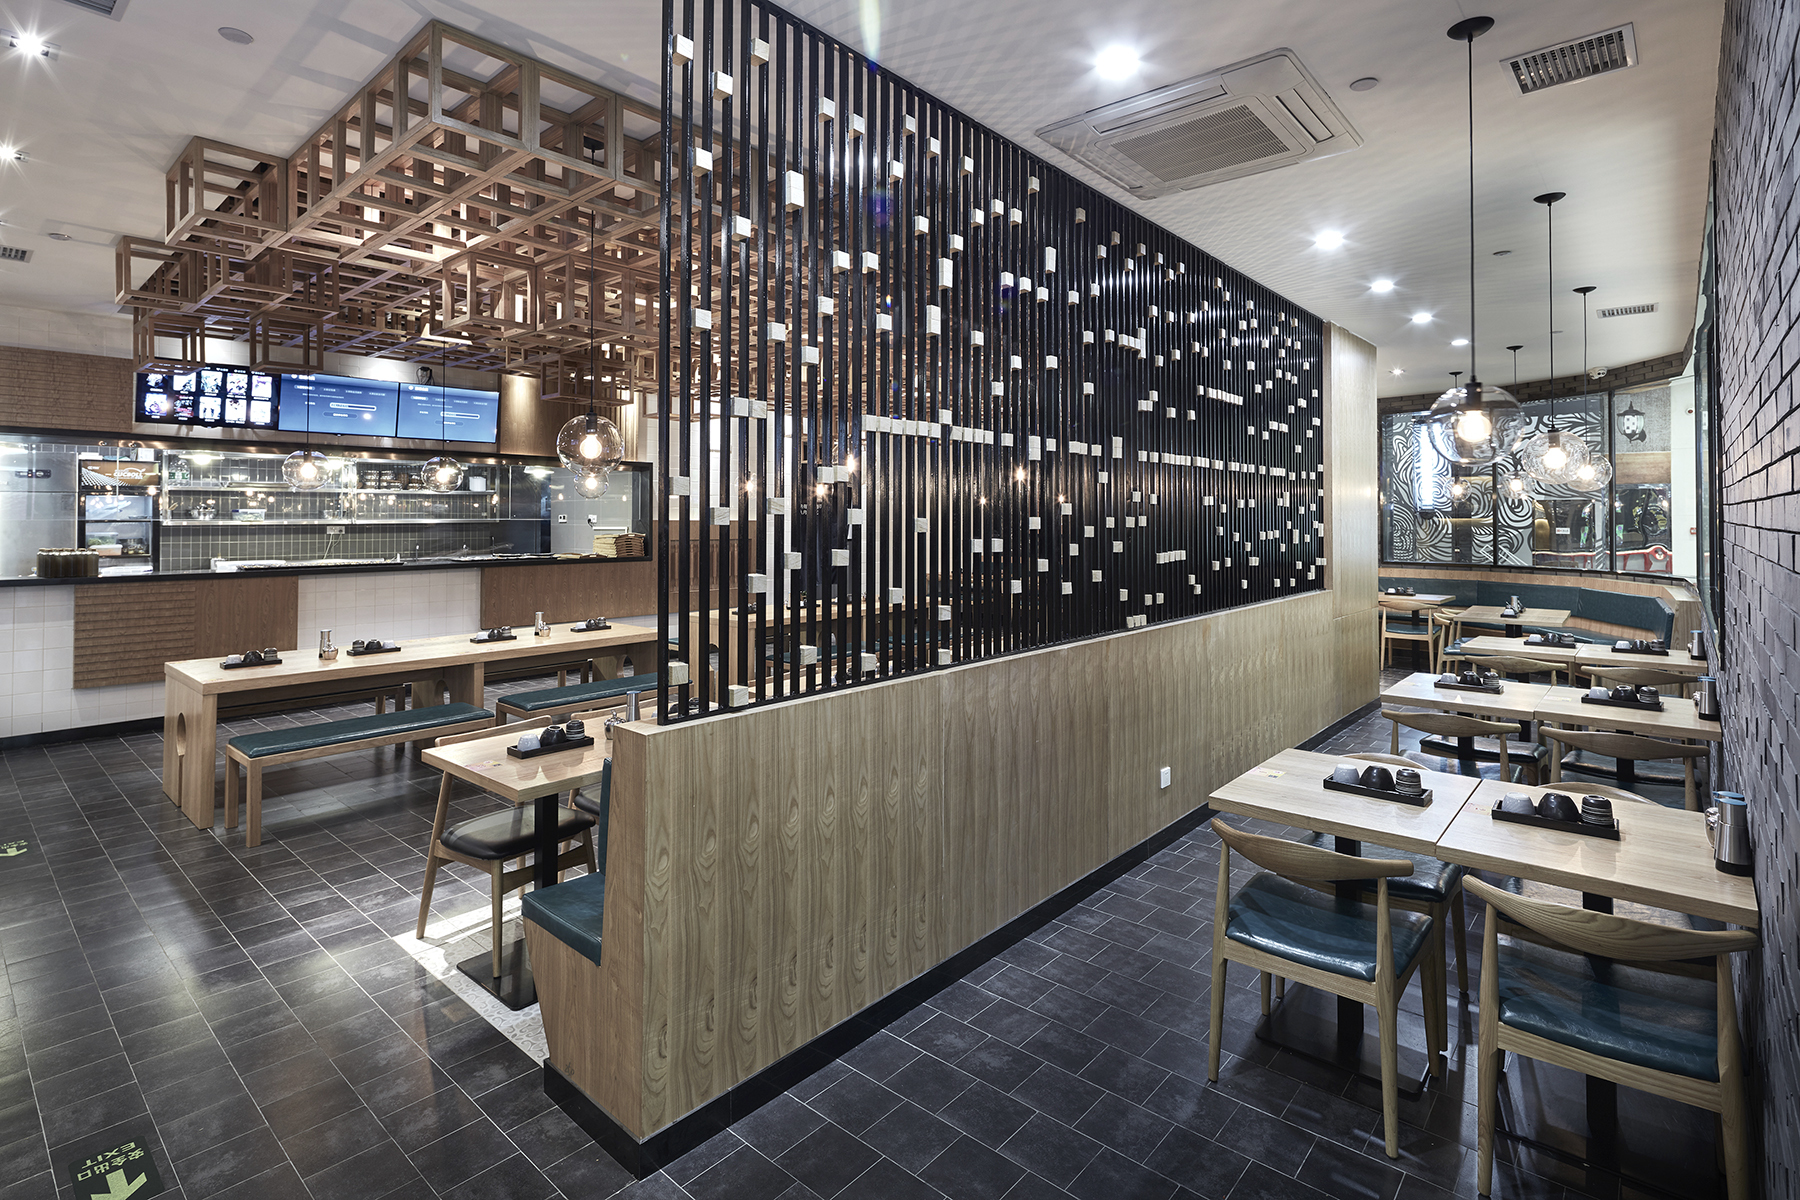 Gallery of 2016 restaurant bar design awards announced 27 for Lounge pictures designs